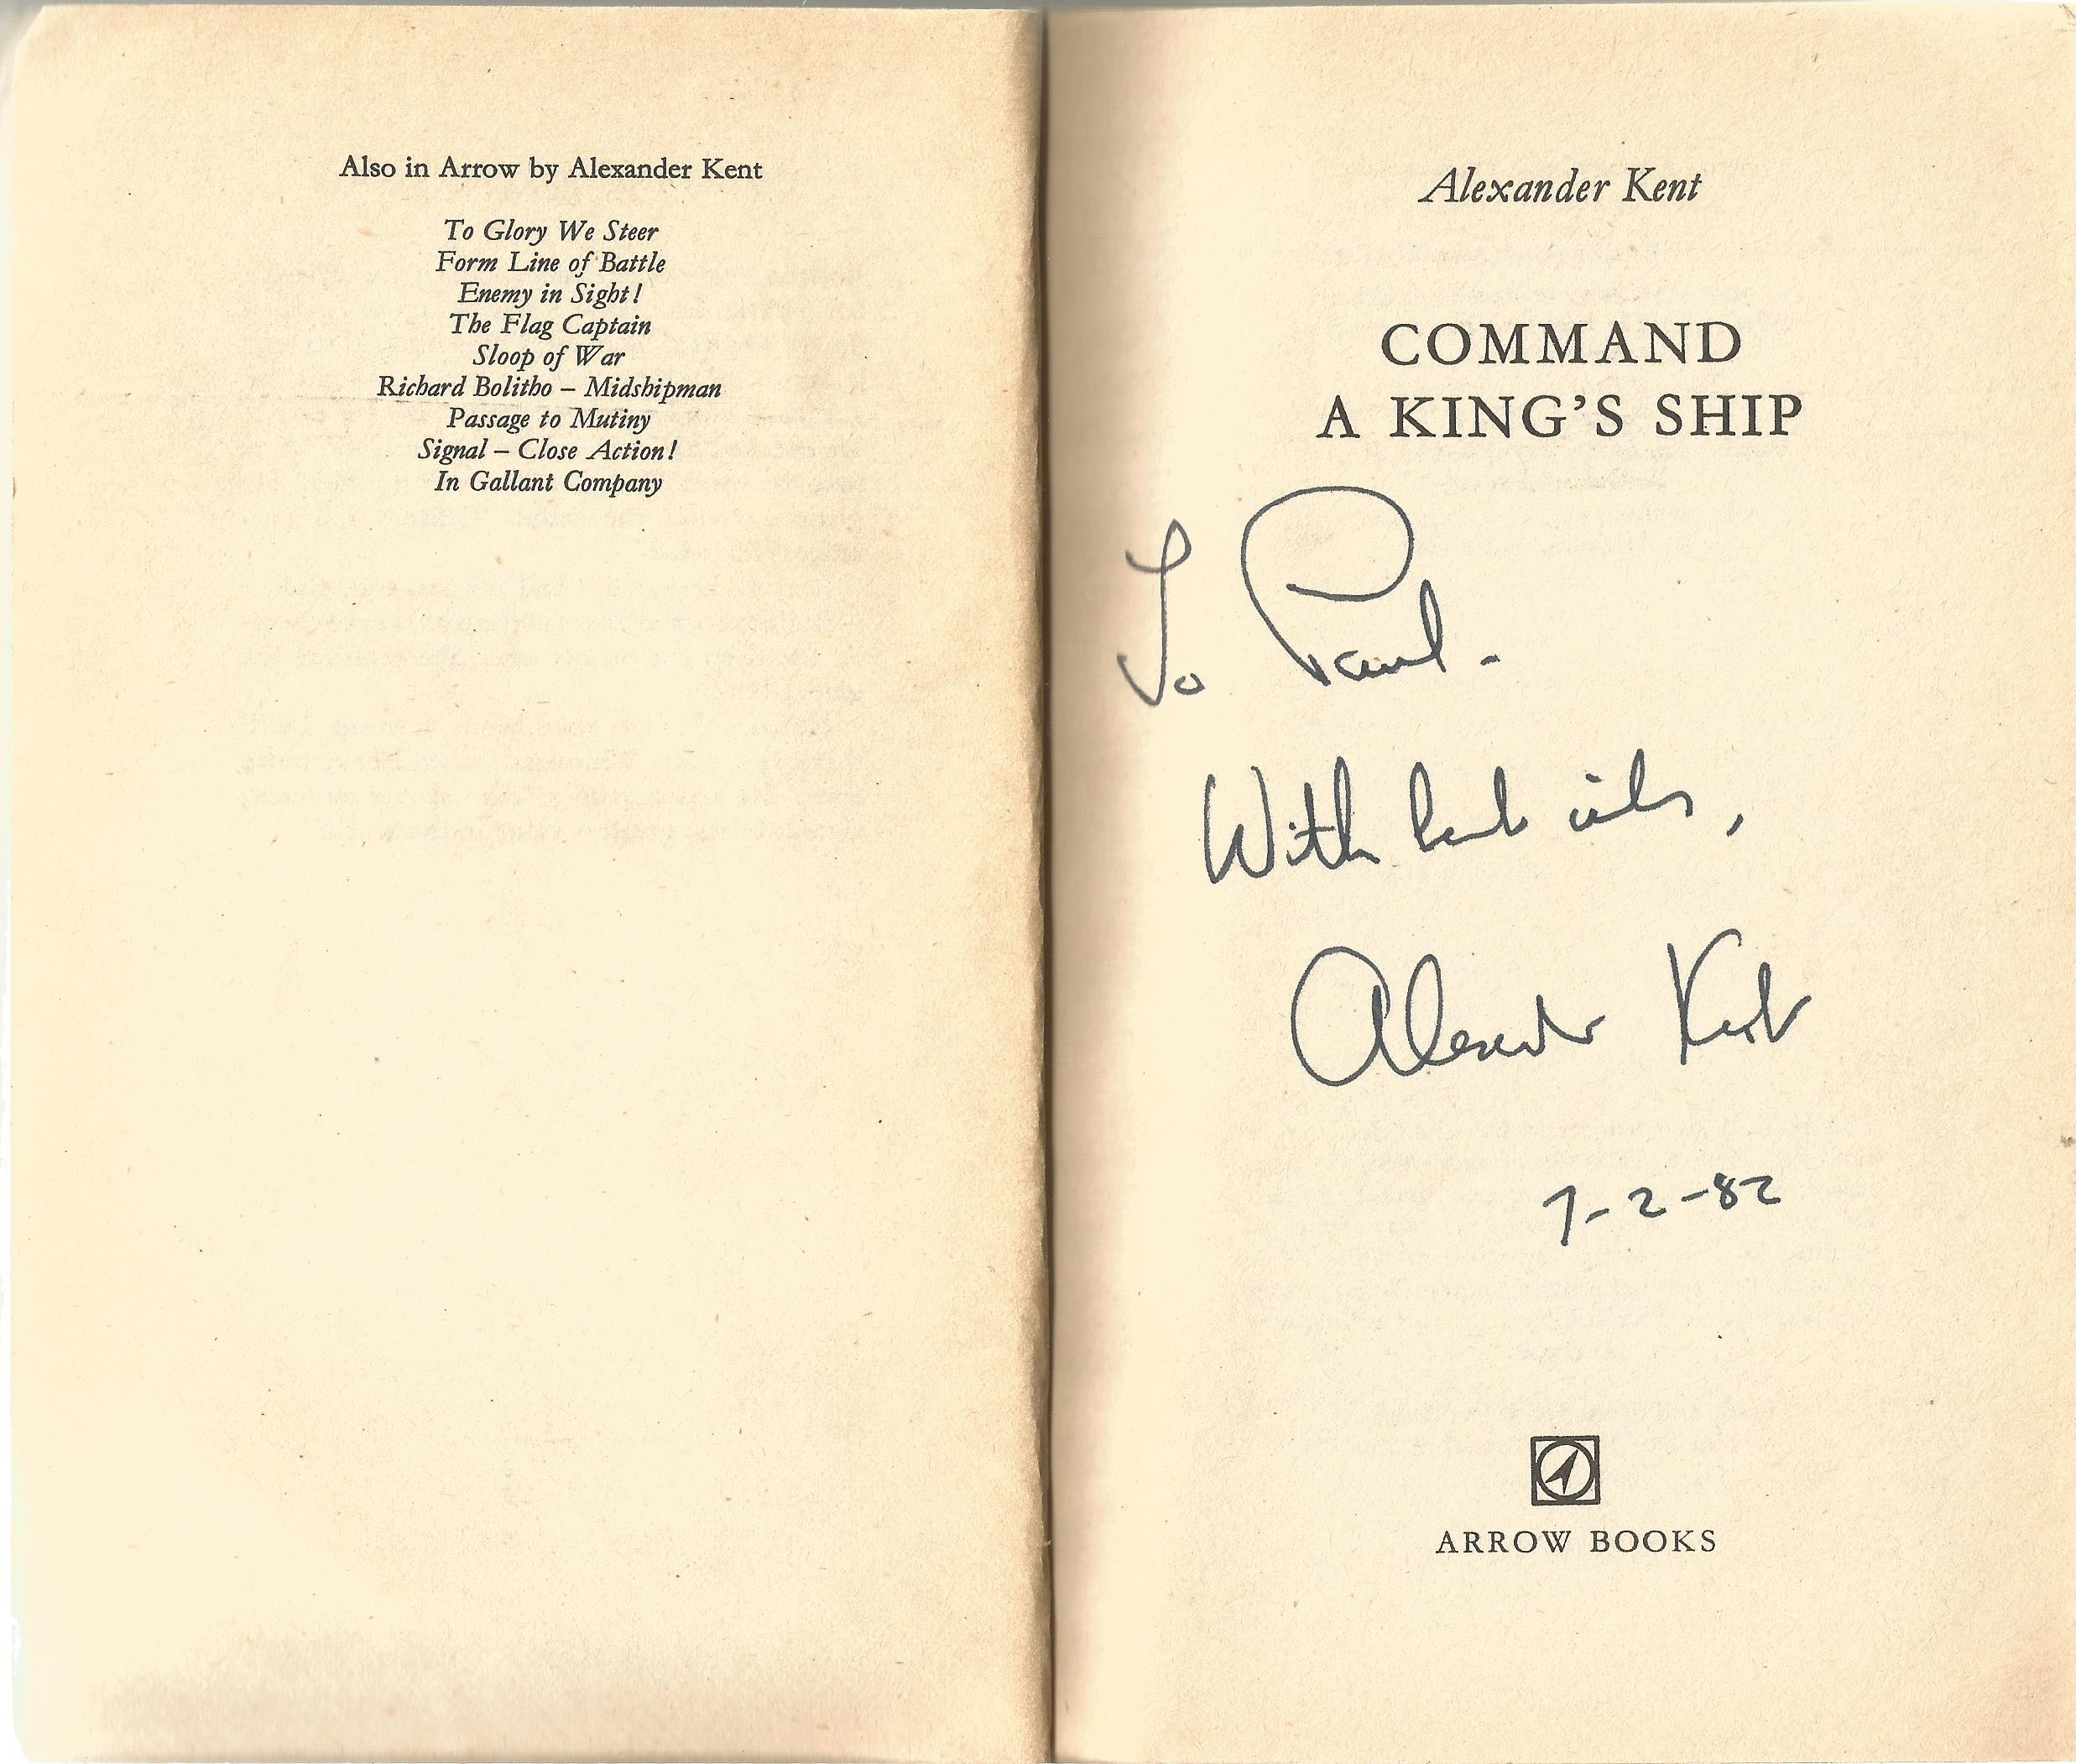 Alexander Kent Paperback Book Command a king's Ship signed by the Author on the Title Page some - Image 2 of 2